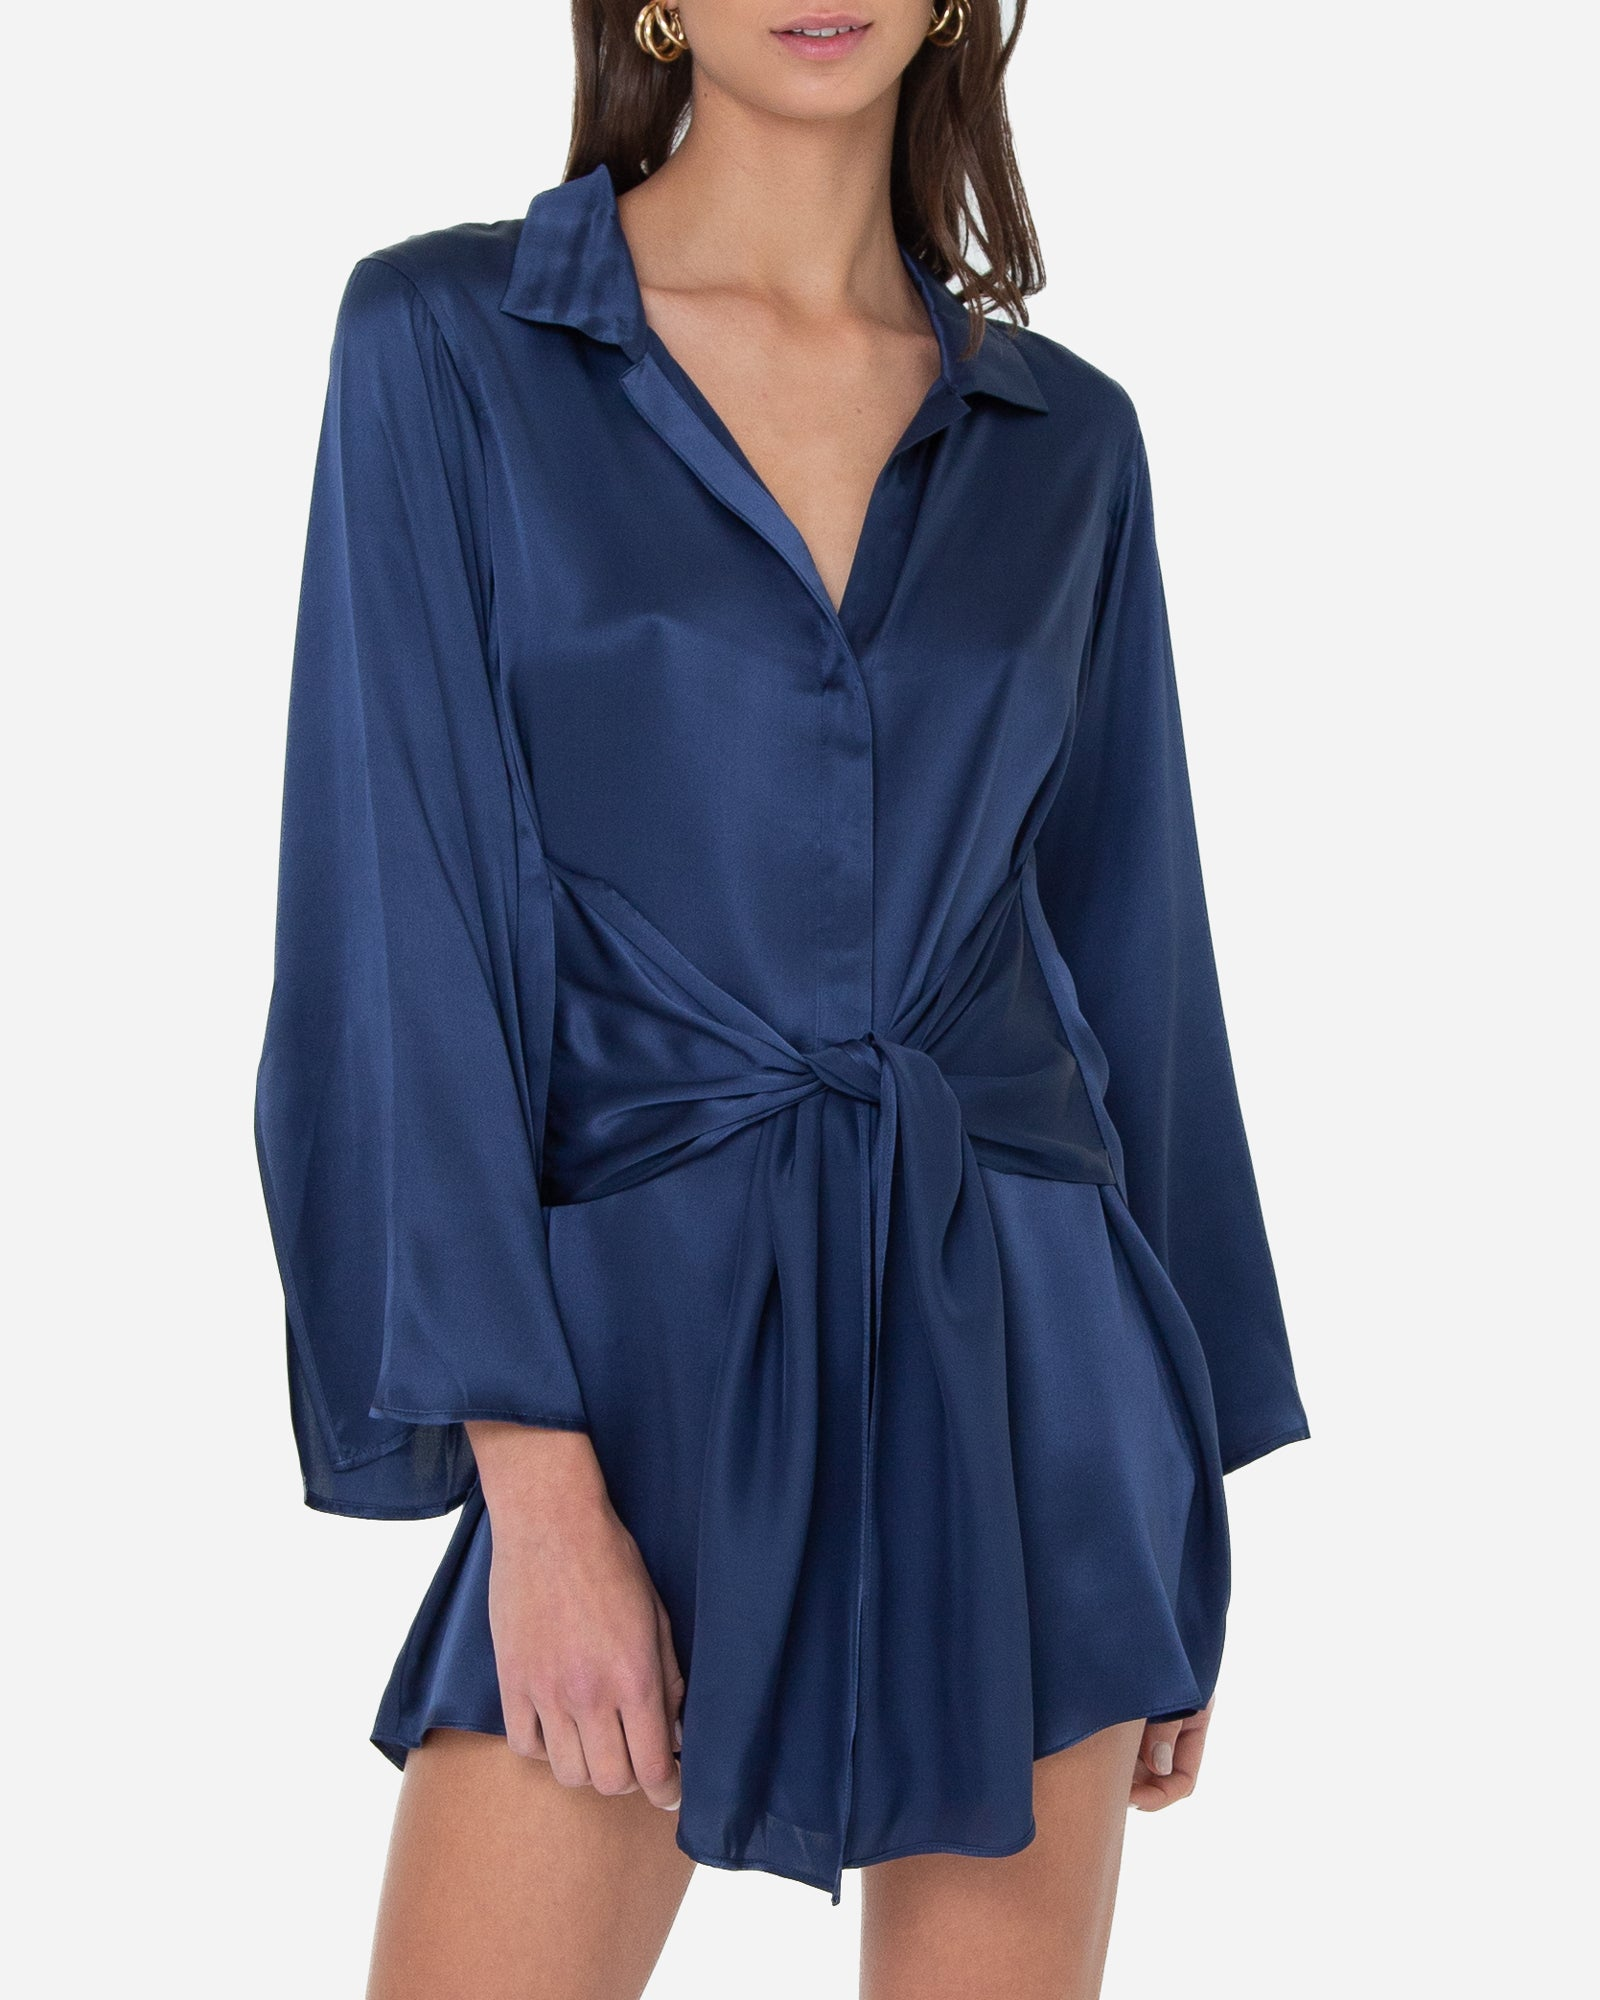 ELLE SHIRTDRESS